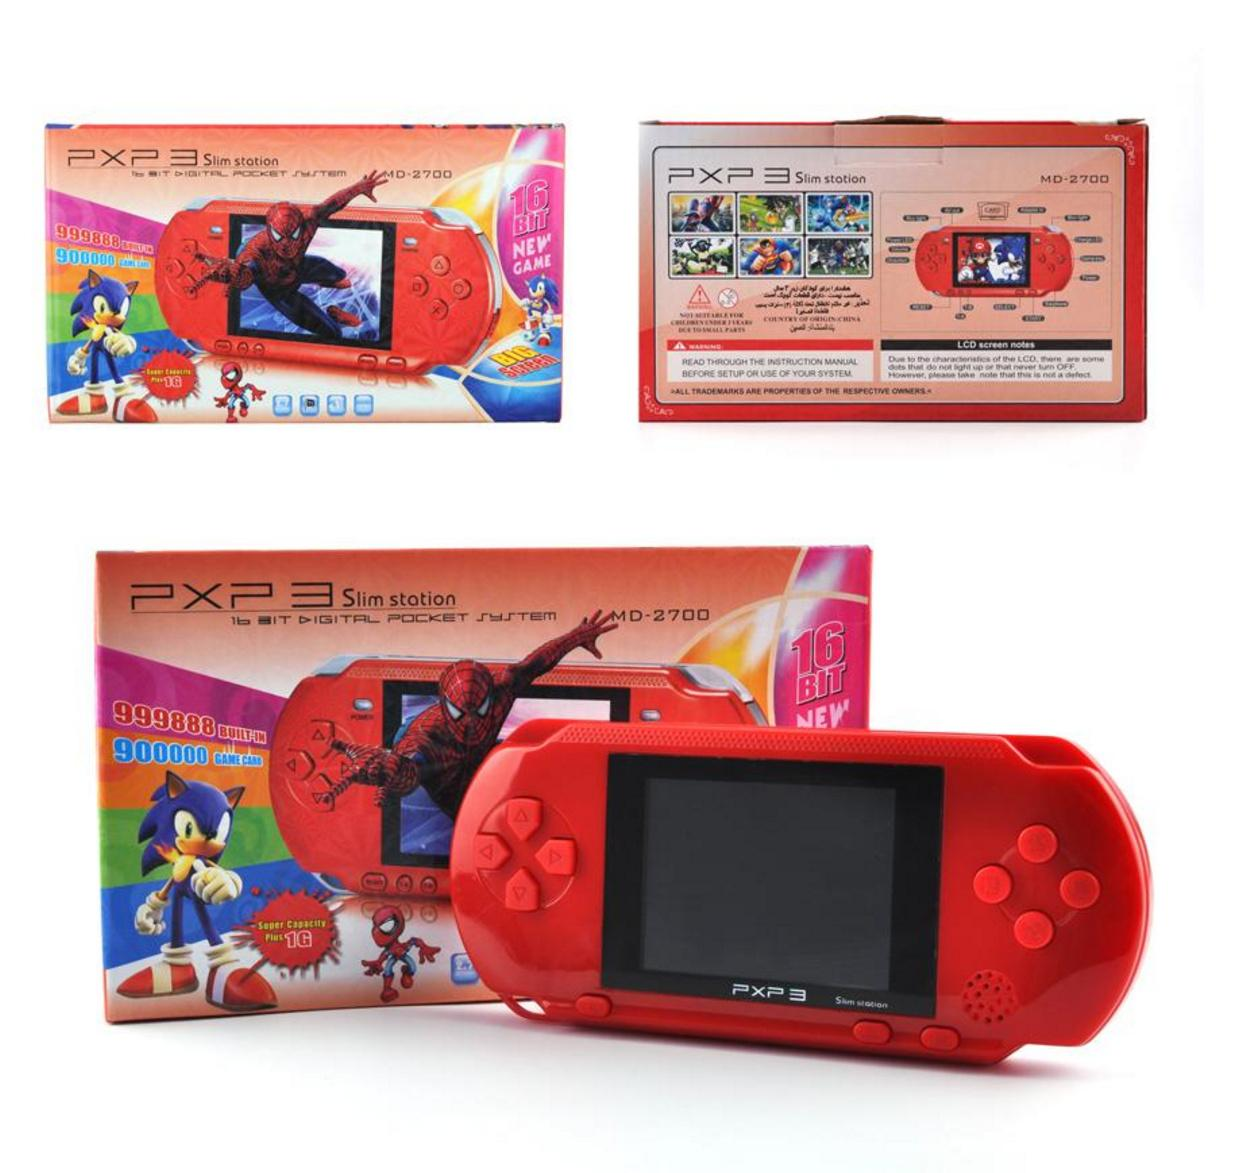 Mini Portable PXP3 PXP (16Bit) PVP (8Bit) Game Video Console TV-Out Games  Slim Station Gaming Console Player Child Xmas Best Gift 2PCS